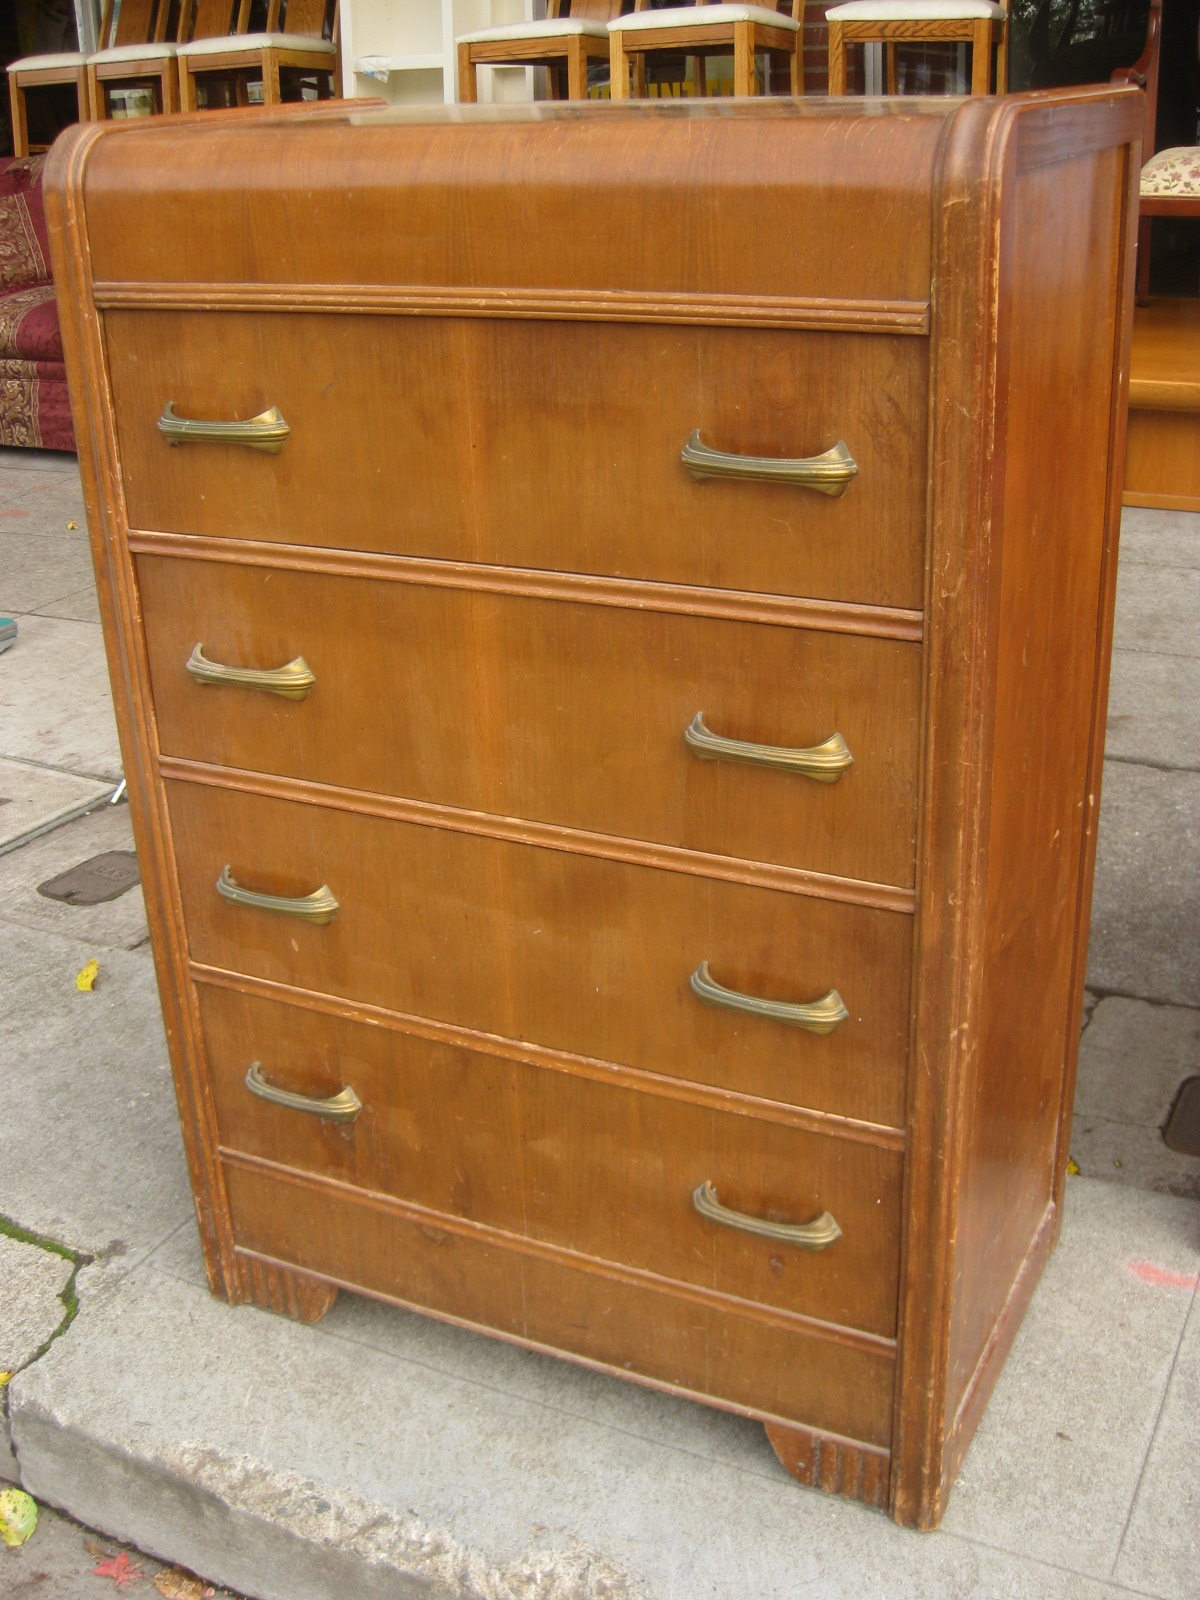 Donate Bedroom Furniture UHURU FURNITURE COLLECTIBLES